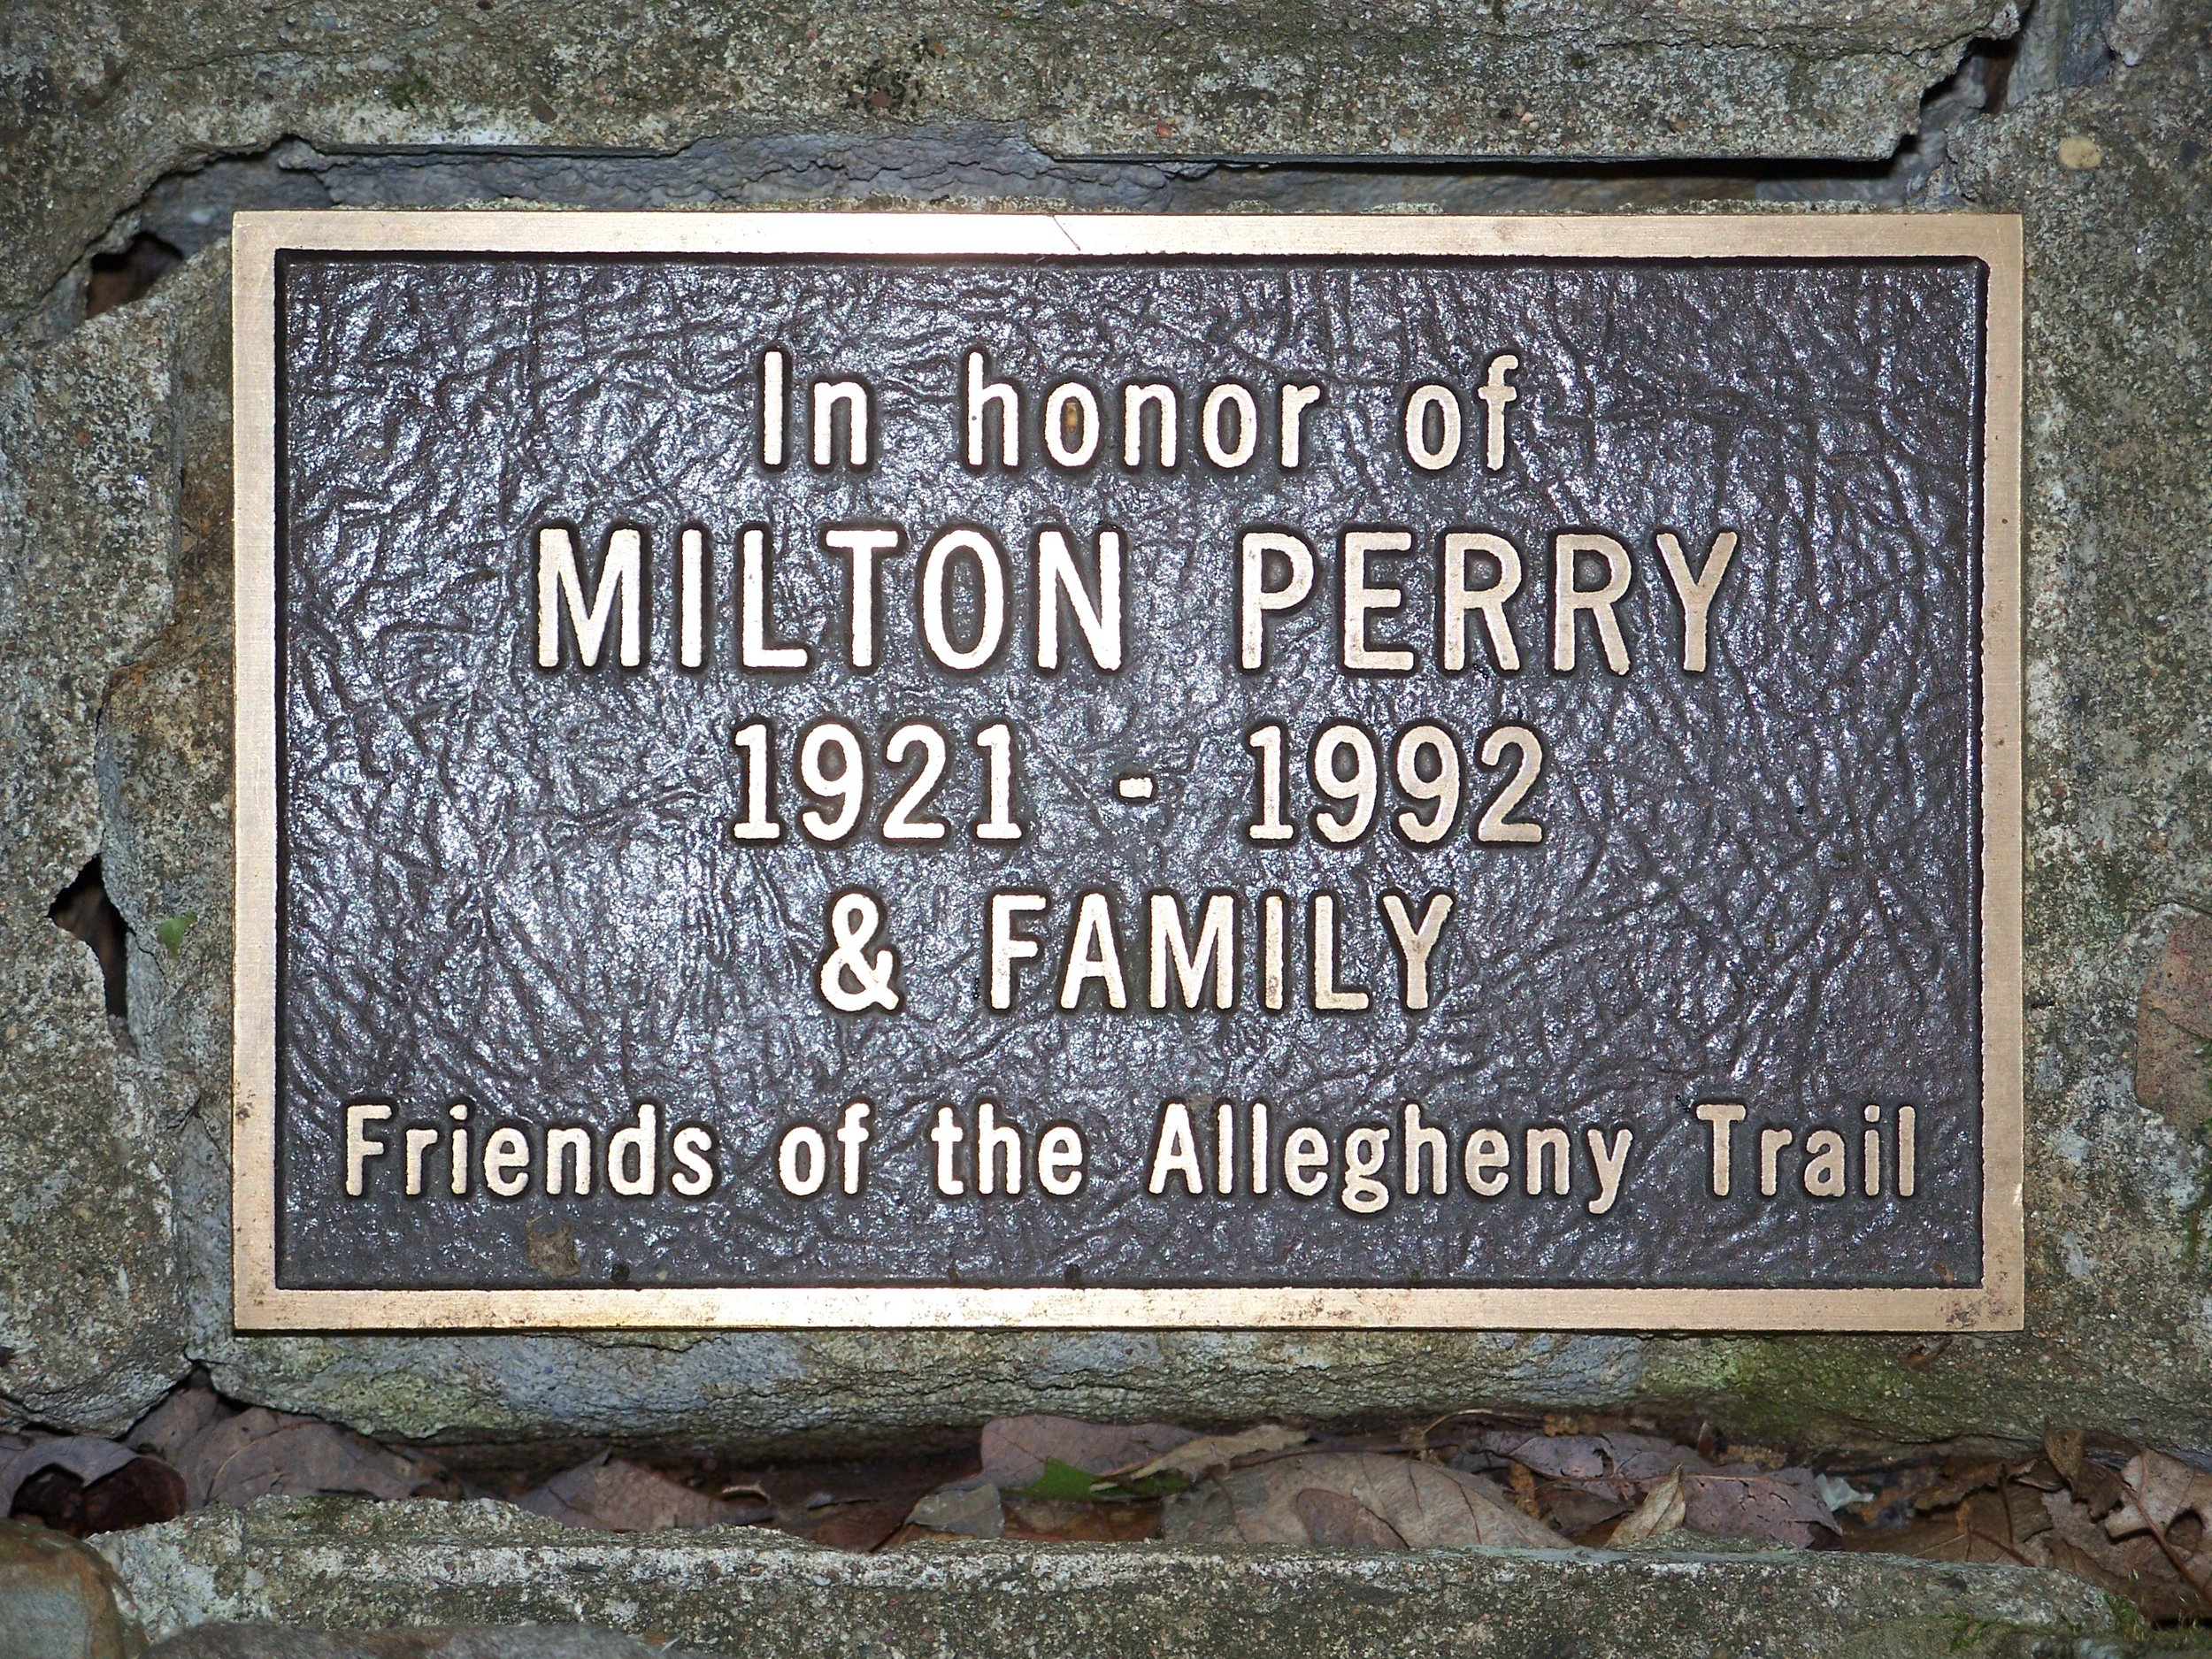 S4 The Milton Perry memorial - By Doug Wood